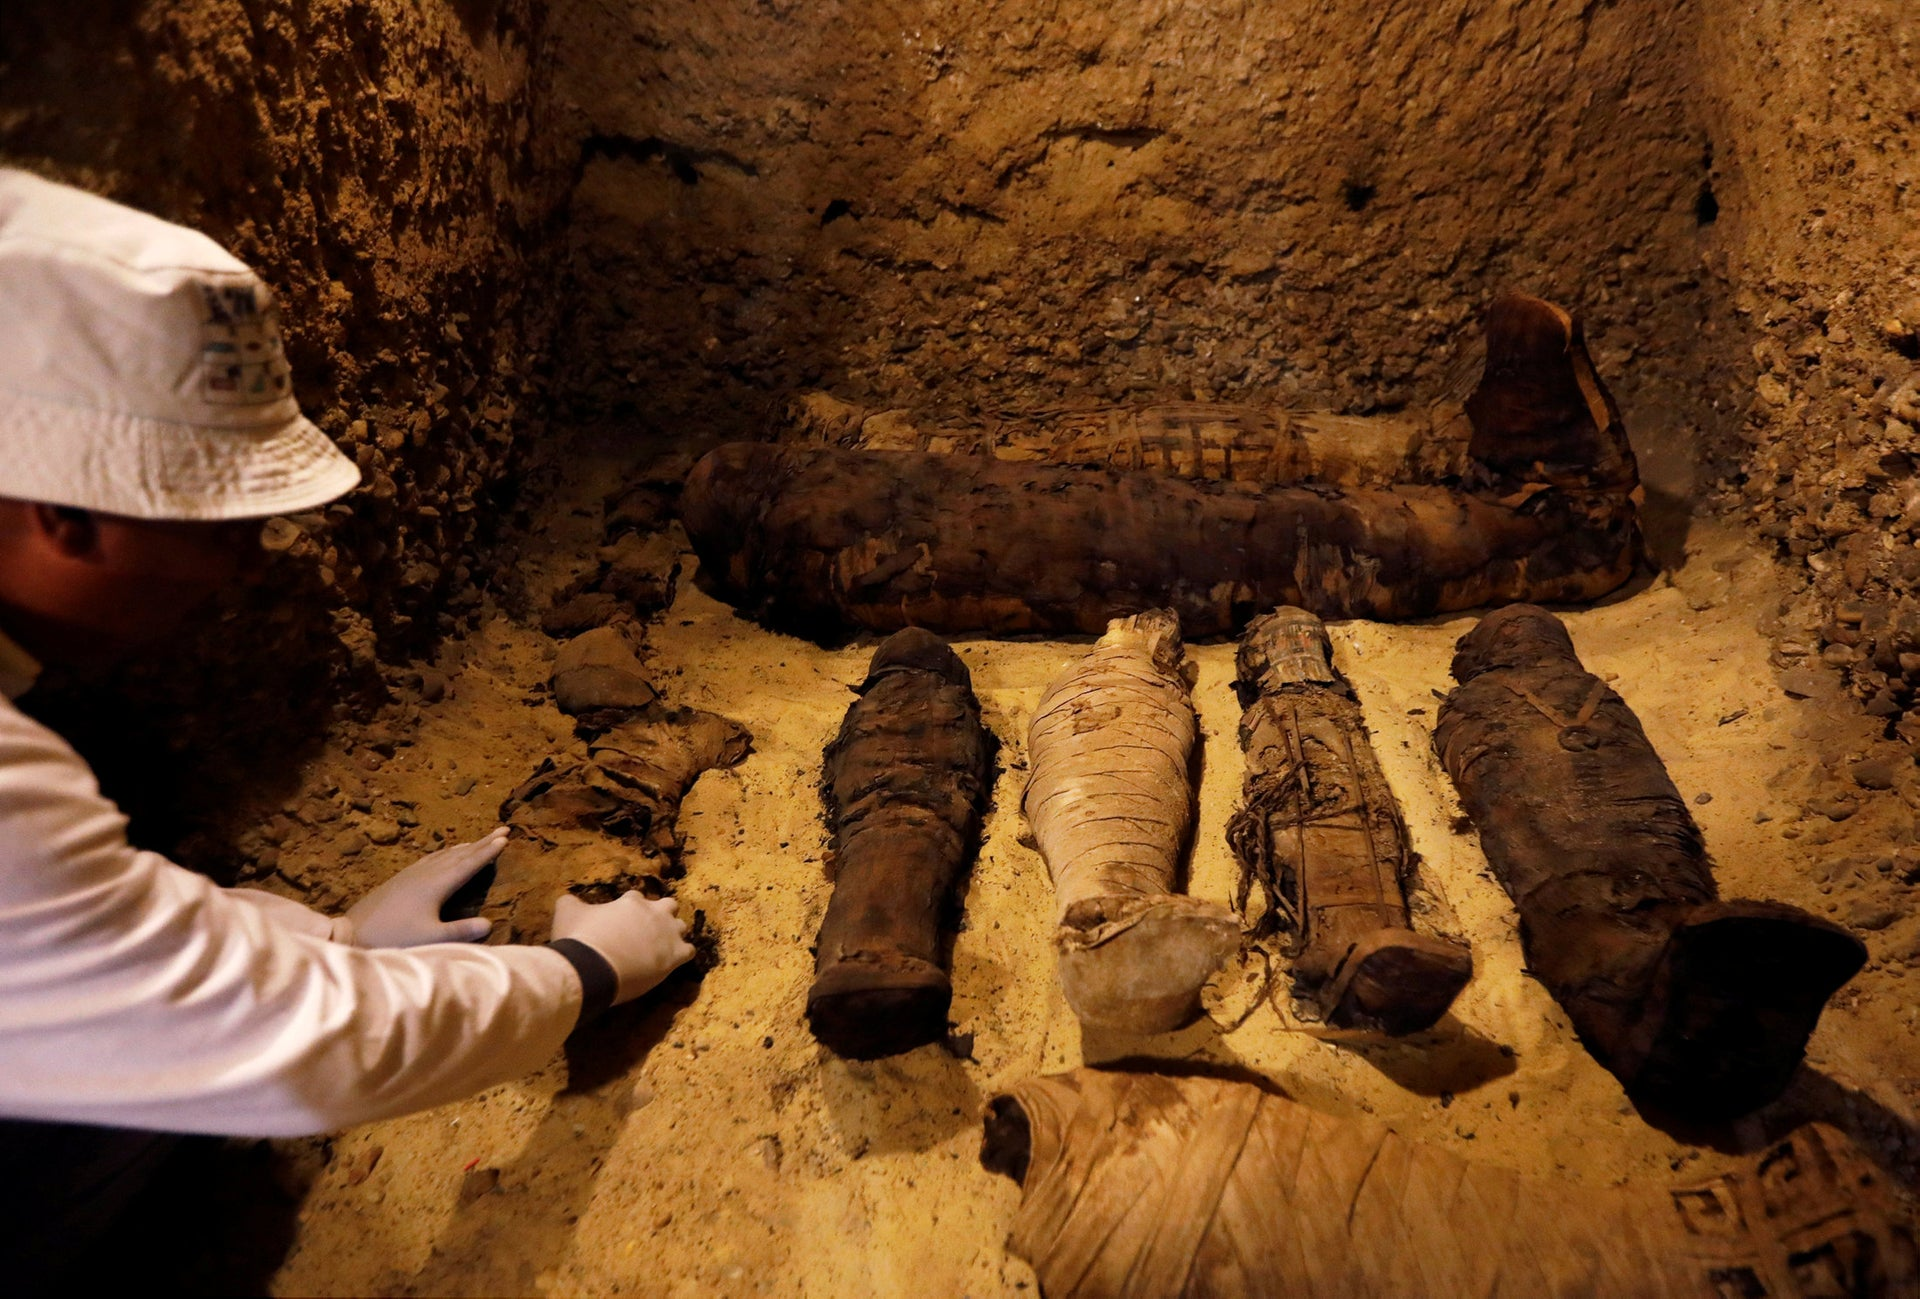 A Egyptian archaeologist examines mummies inside a tomb during the presentation of a new discovery at Tuna el-Gebel archaeological site in Minya Governorate, Egypt, February 2, 2019.